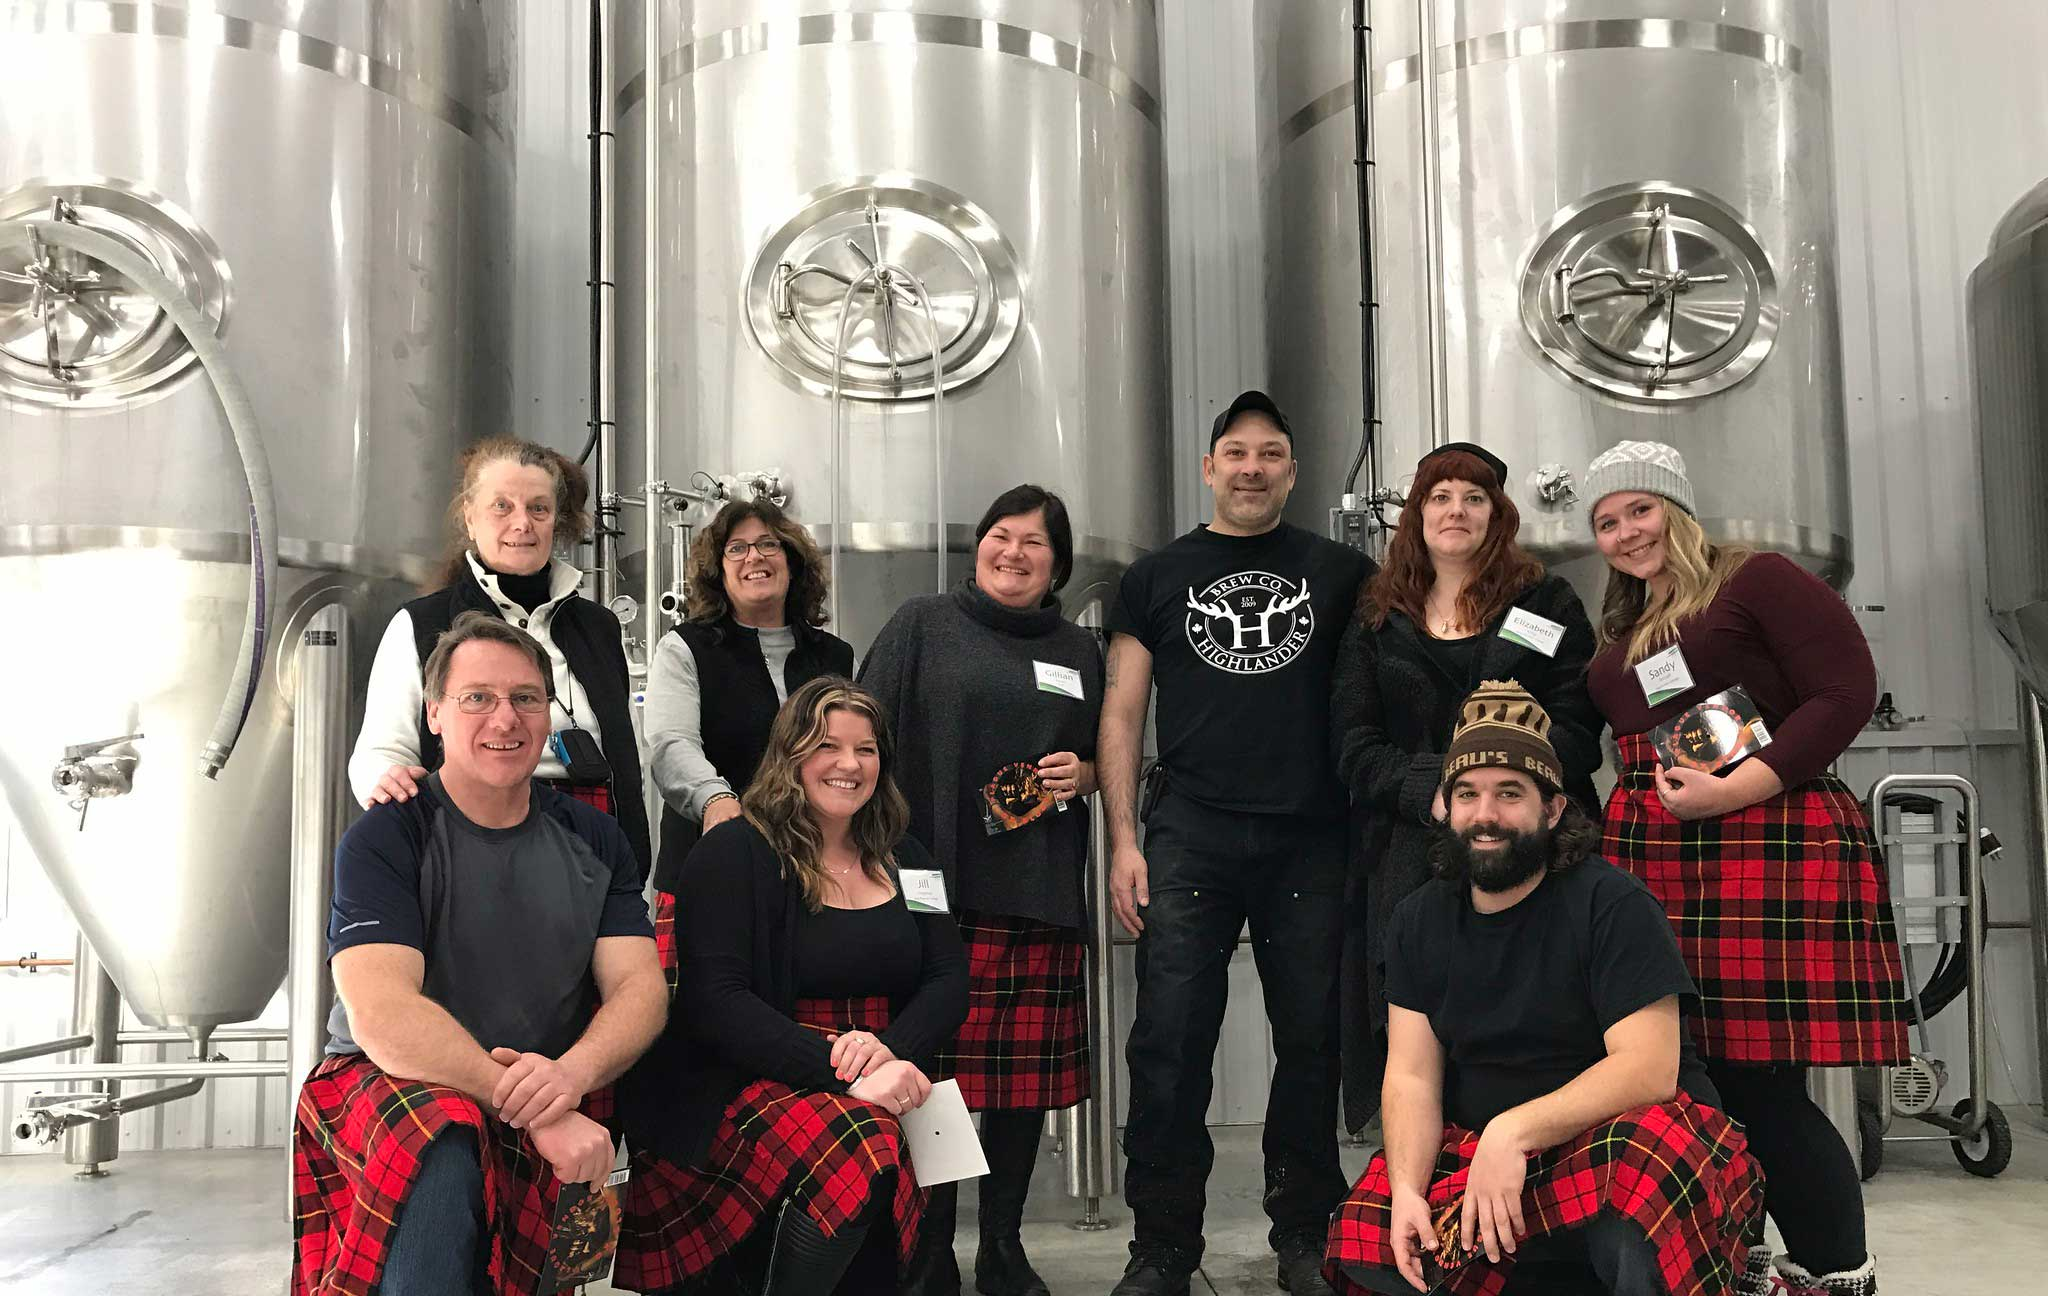 A brewery tour in the local area